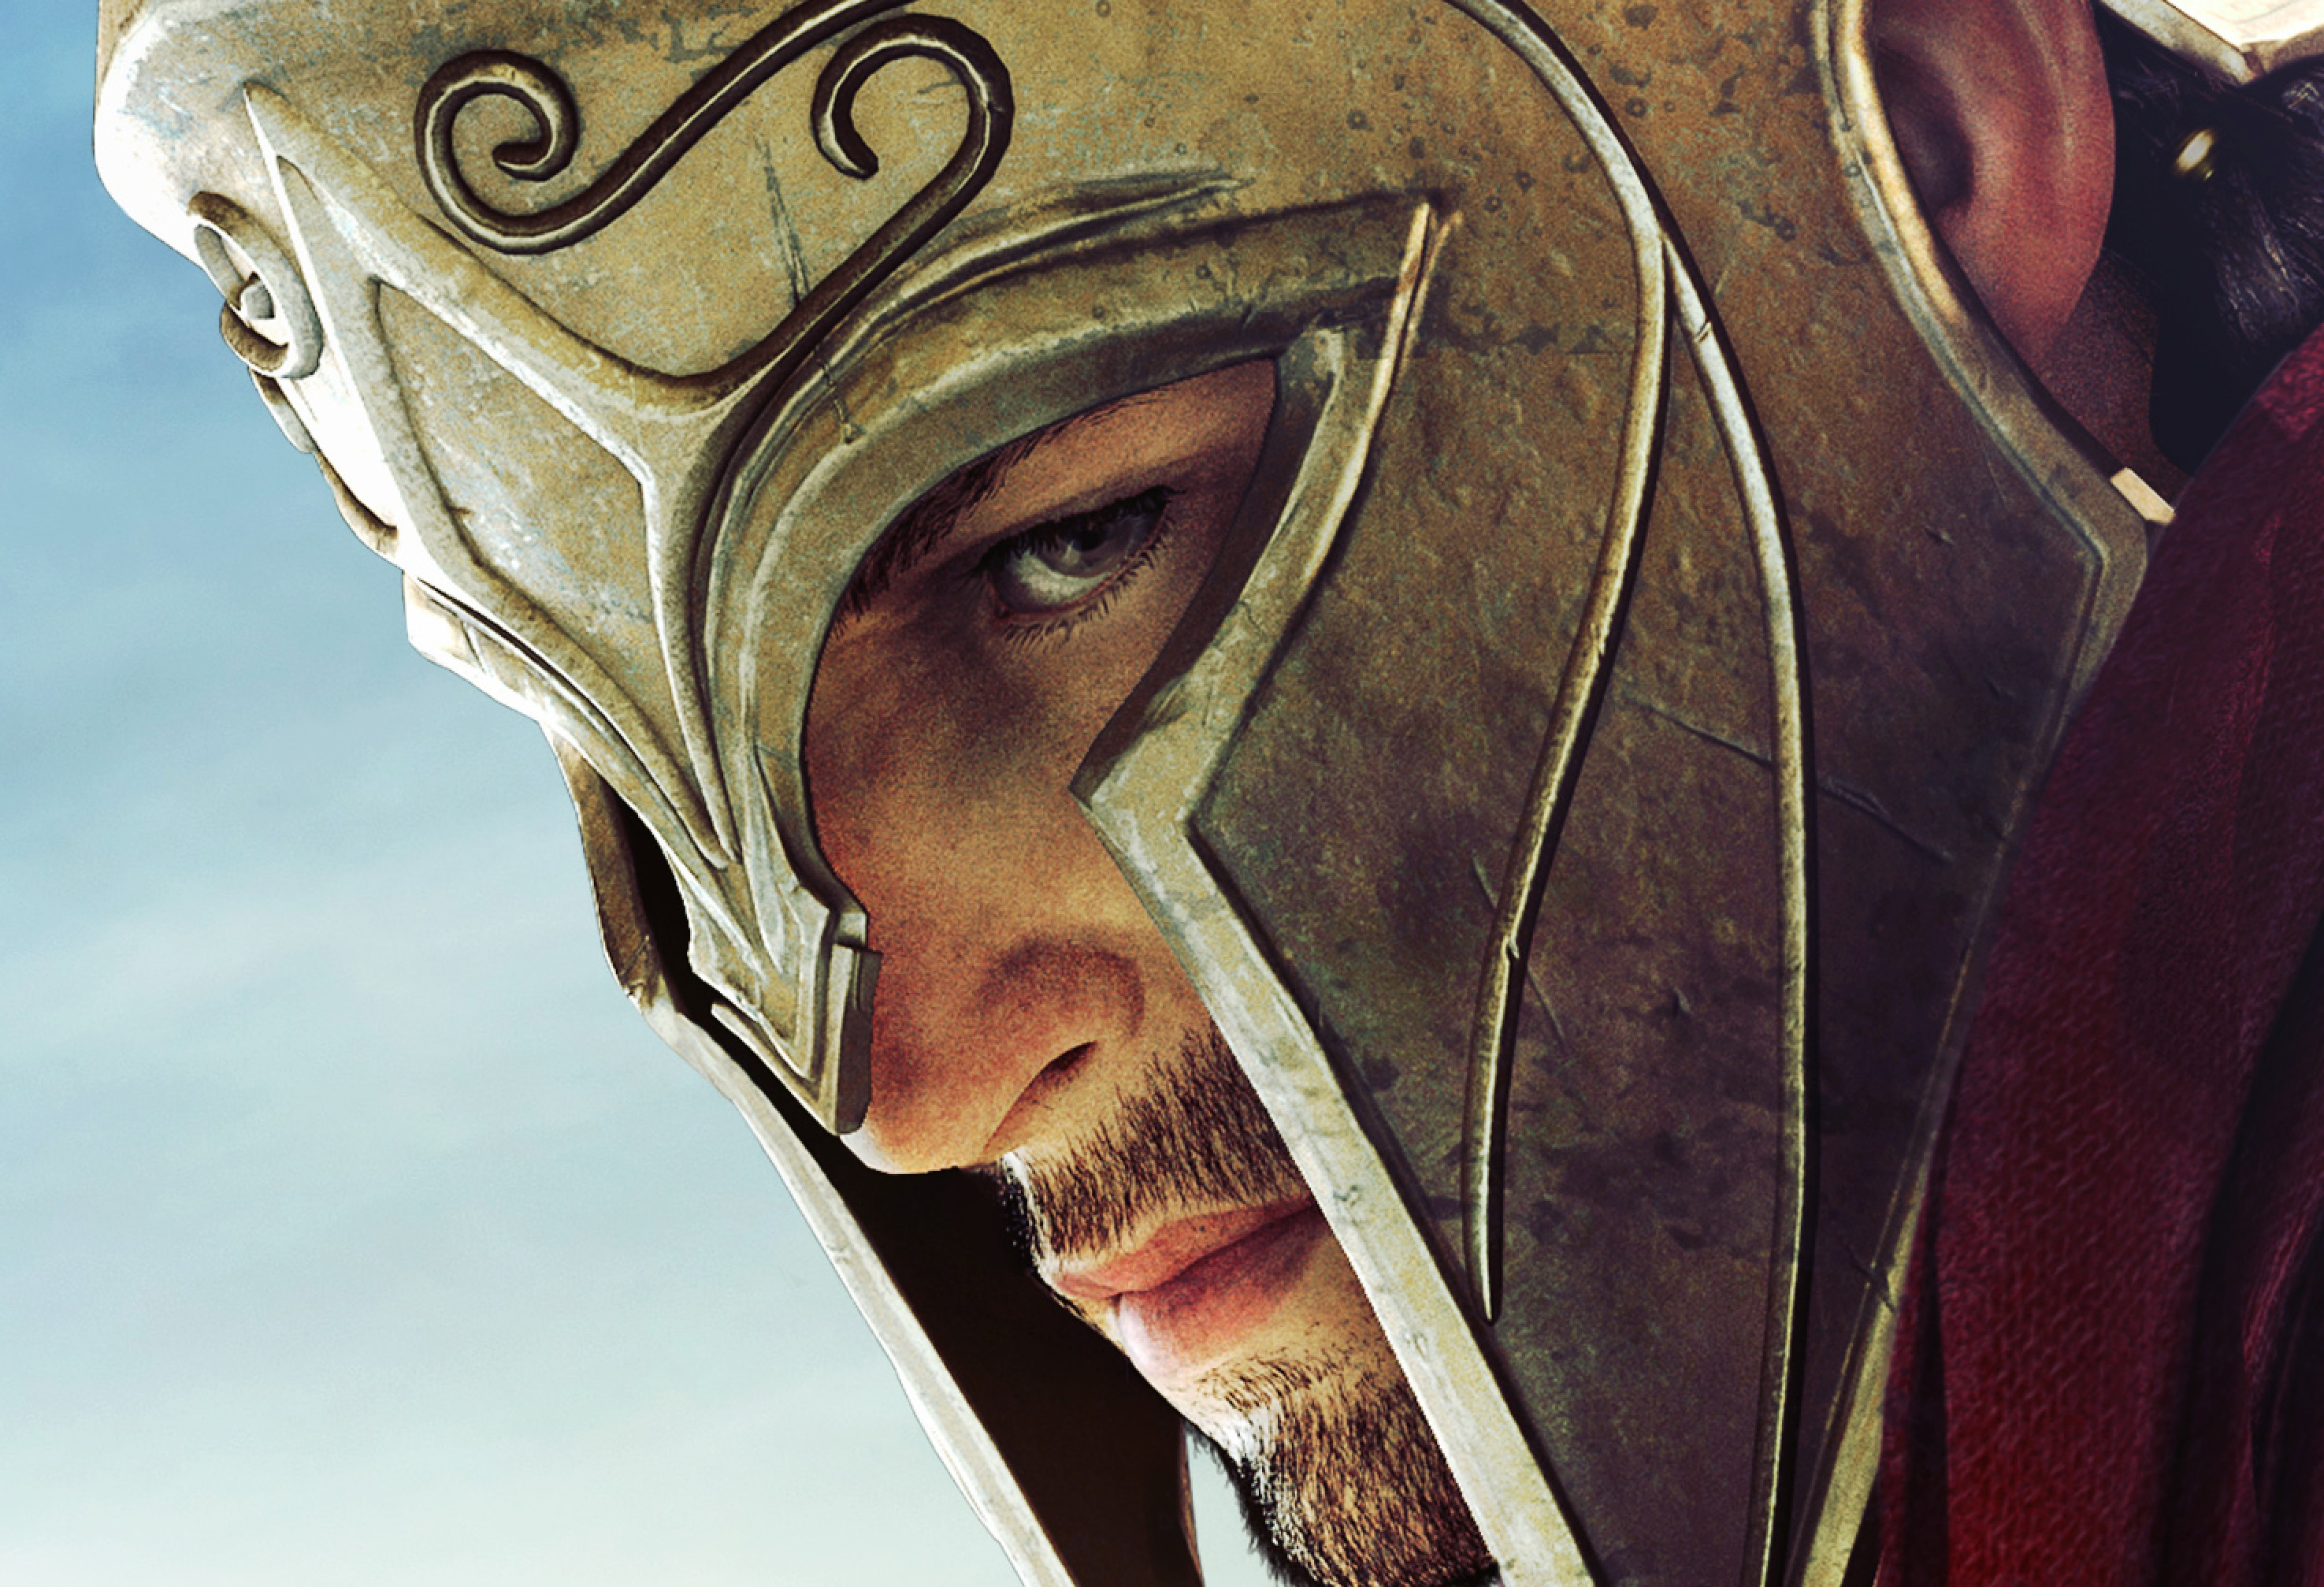 Assassin's Creed Odyssey – Patch 1.04 Deployed!